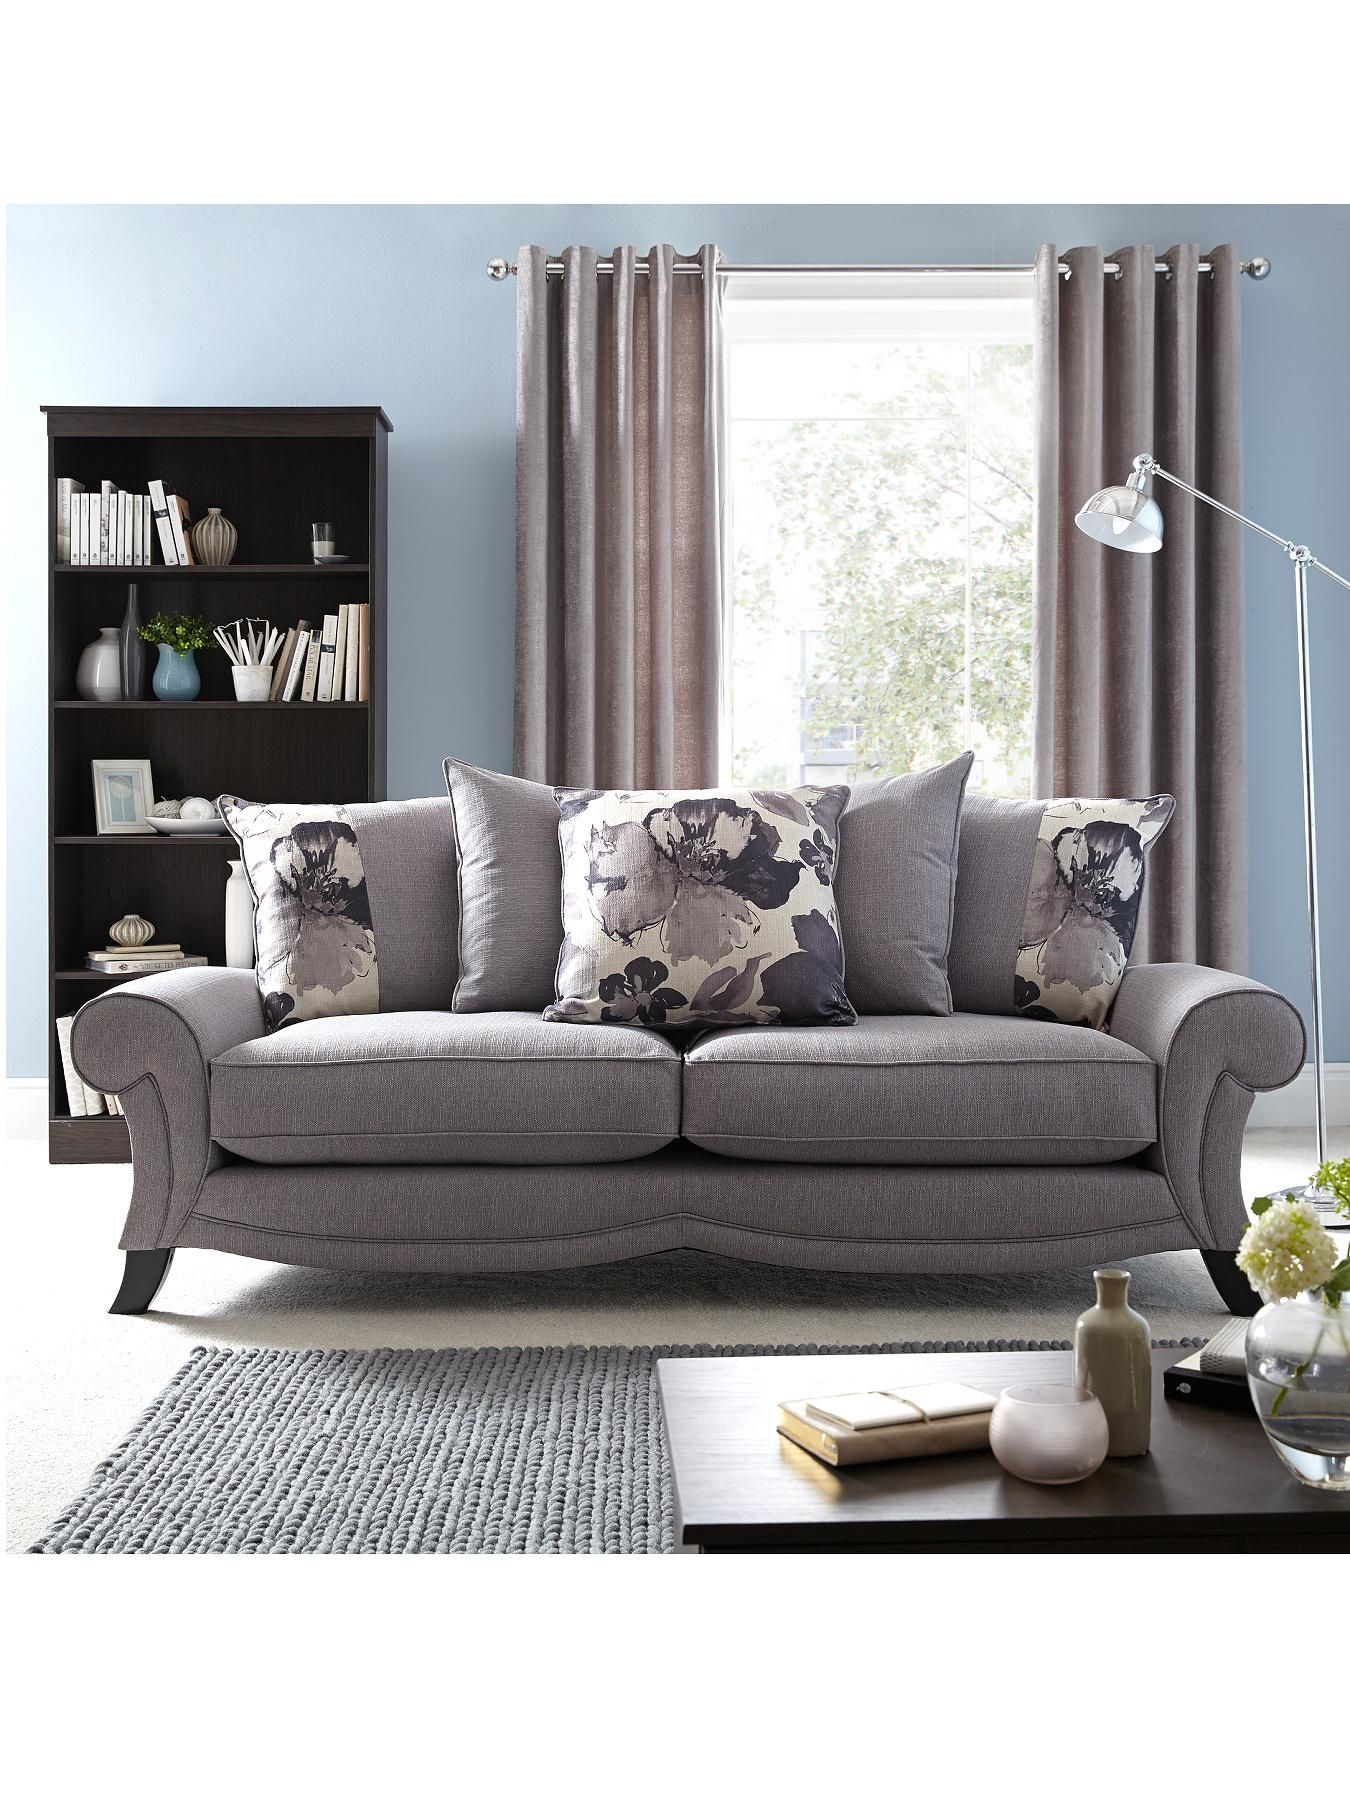 Official Littlewoods Site Online Shopping Department Store For Women S Men S Kids Clothing And More Living Room Inspiration Sofa Set Room Inspiration